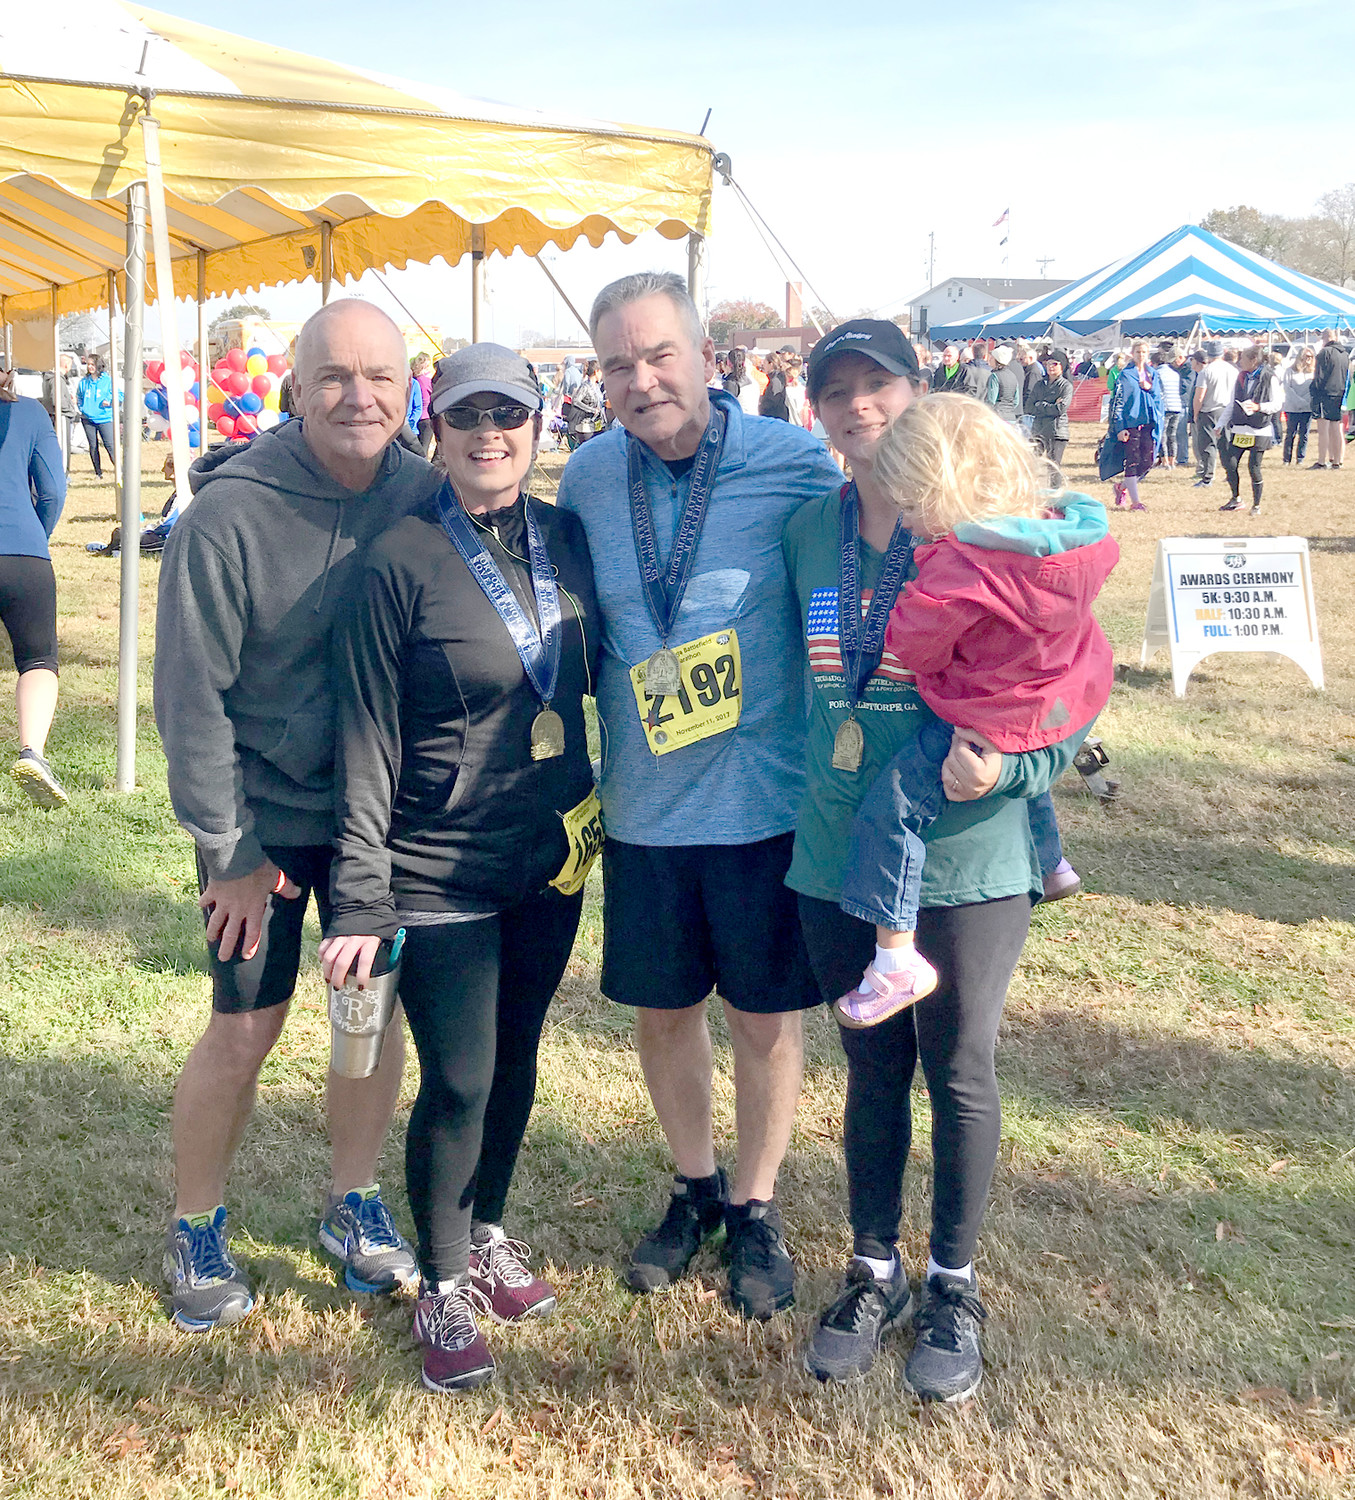 Shown after completing the ½ Marathon at Chickamauga Battlefield are Mark Williams, Regina Williams, Denny Williams and Heather Wilson.